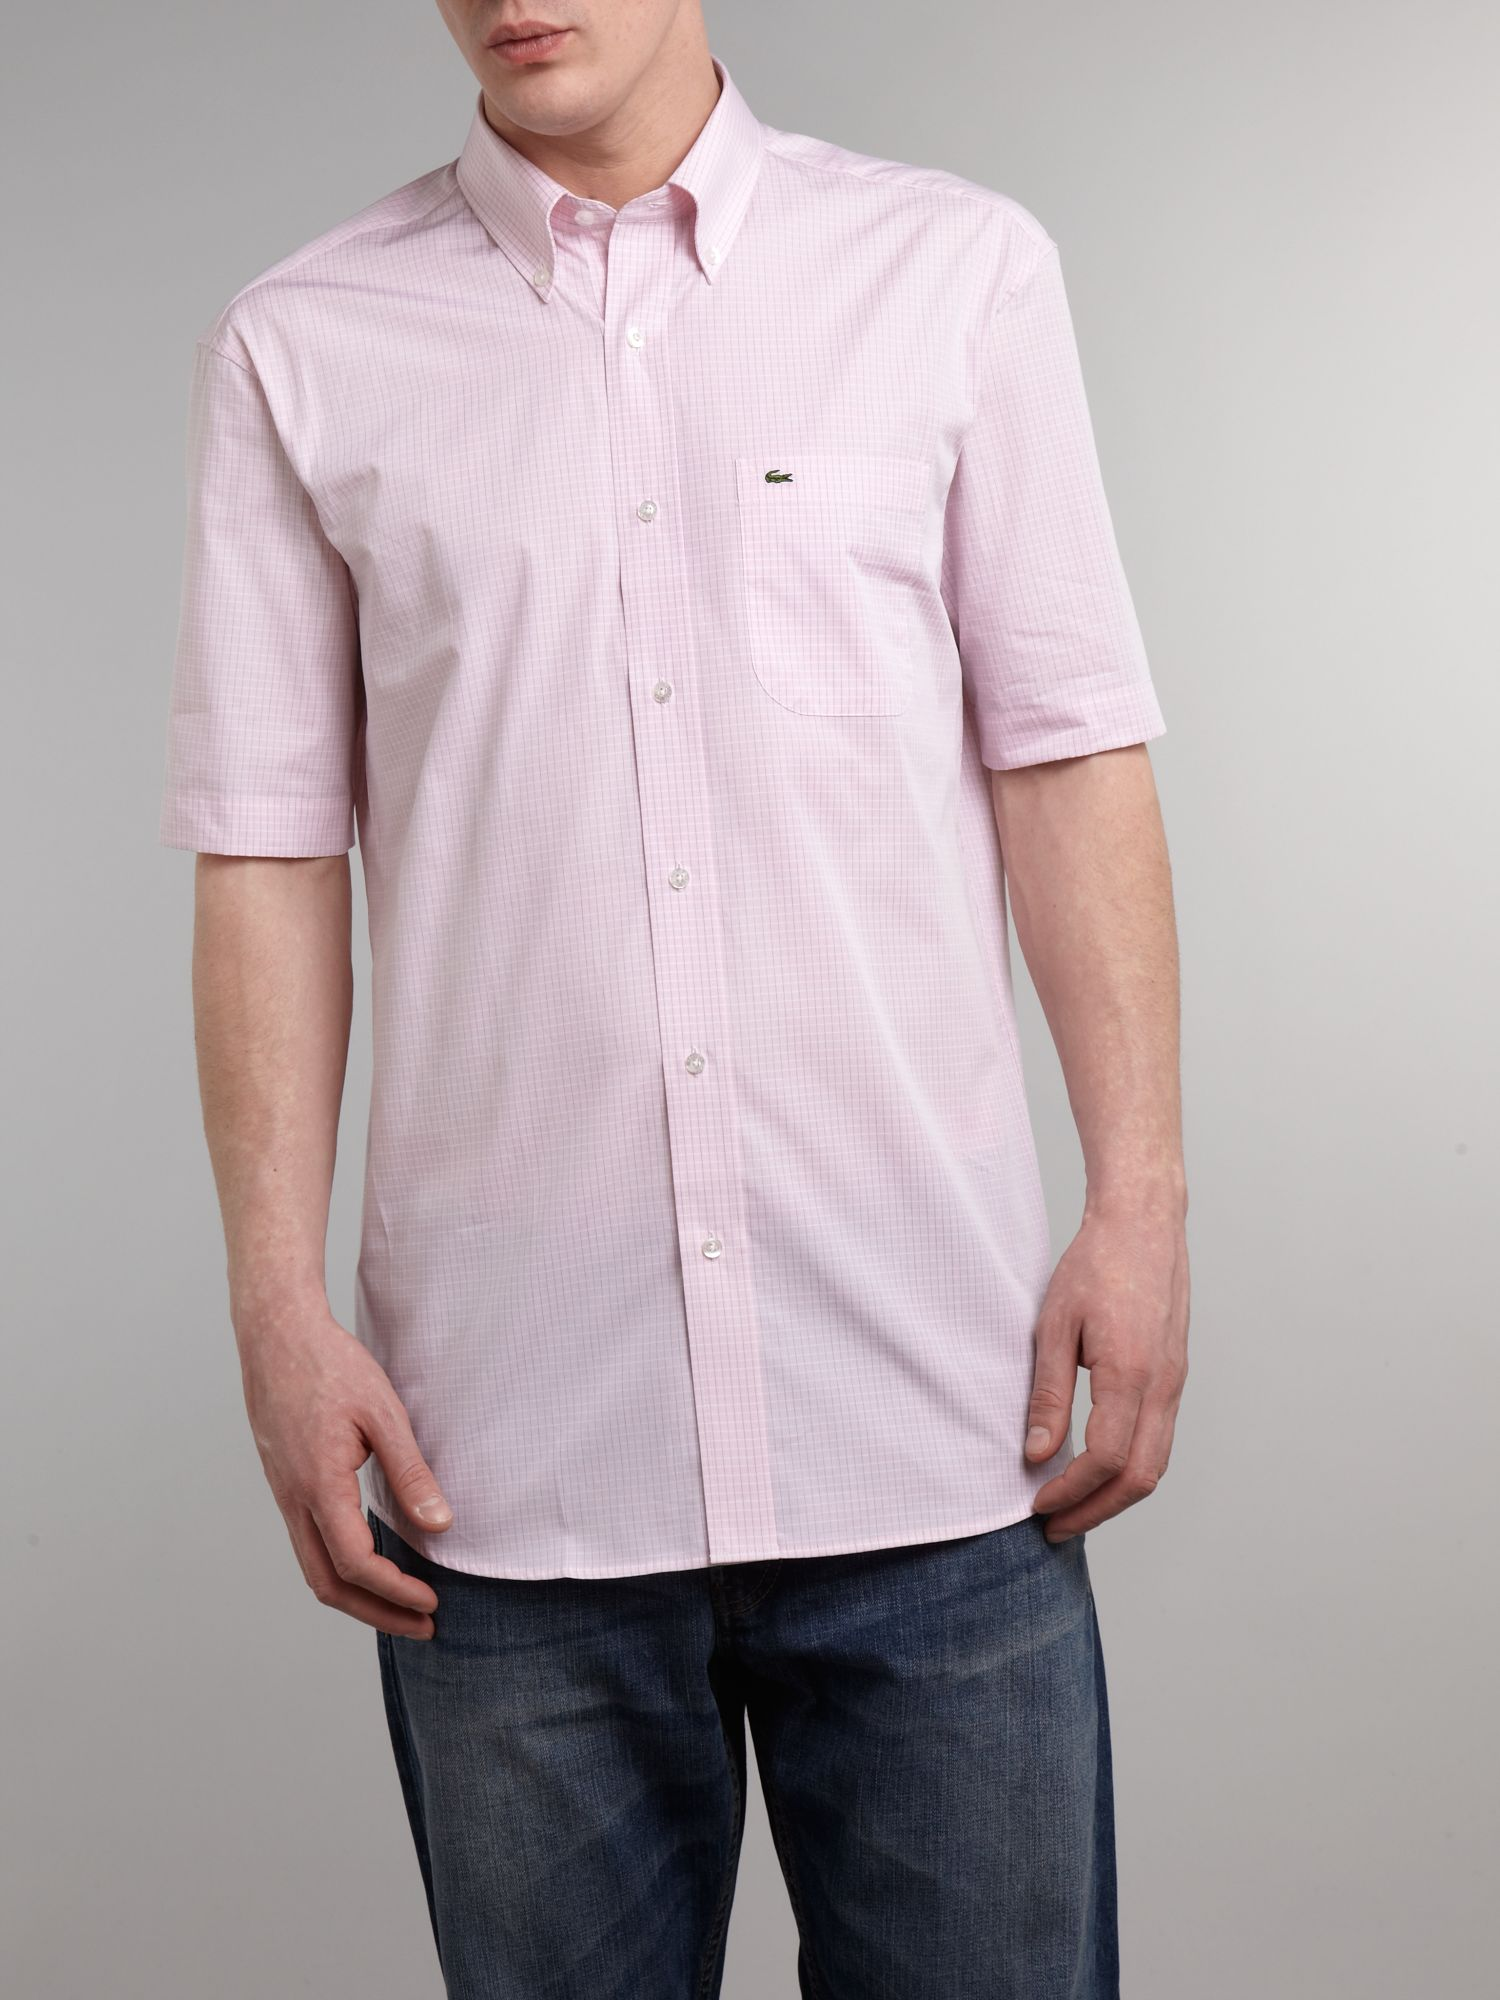 Short sleeved fine city check shirt